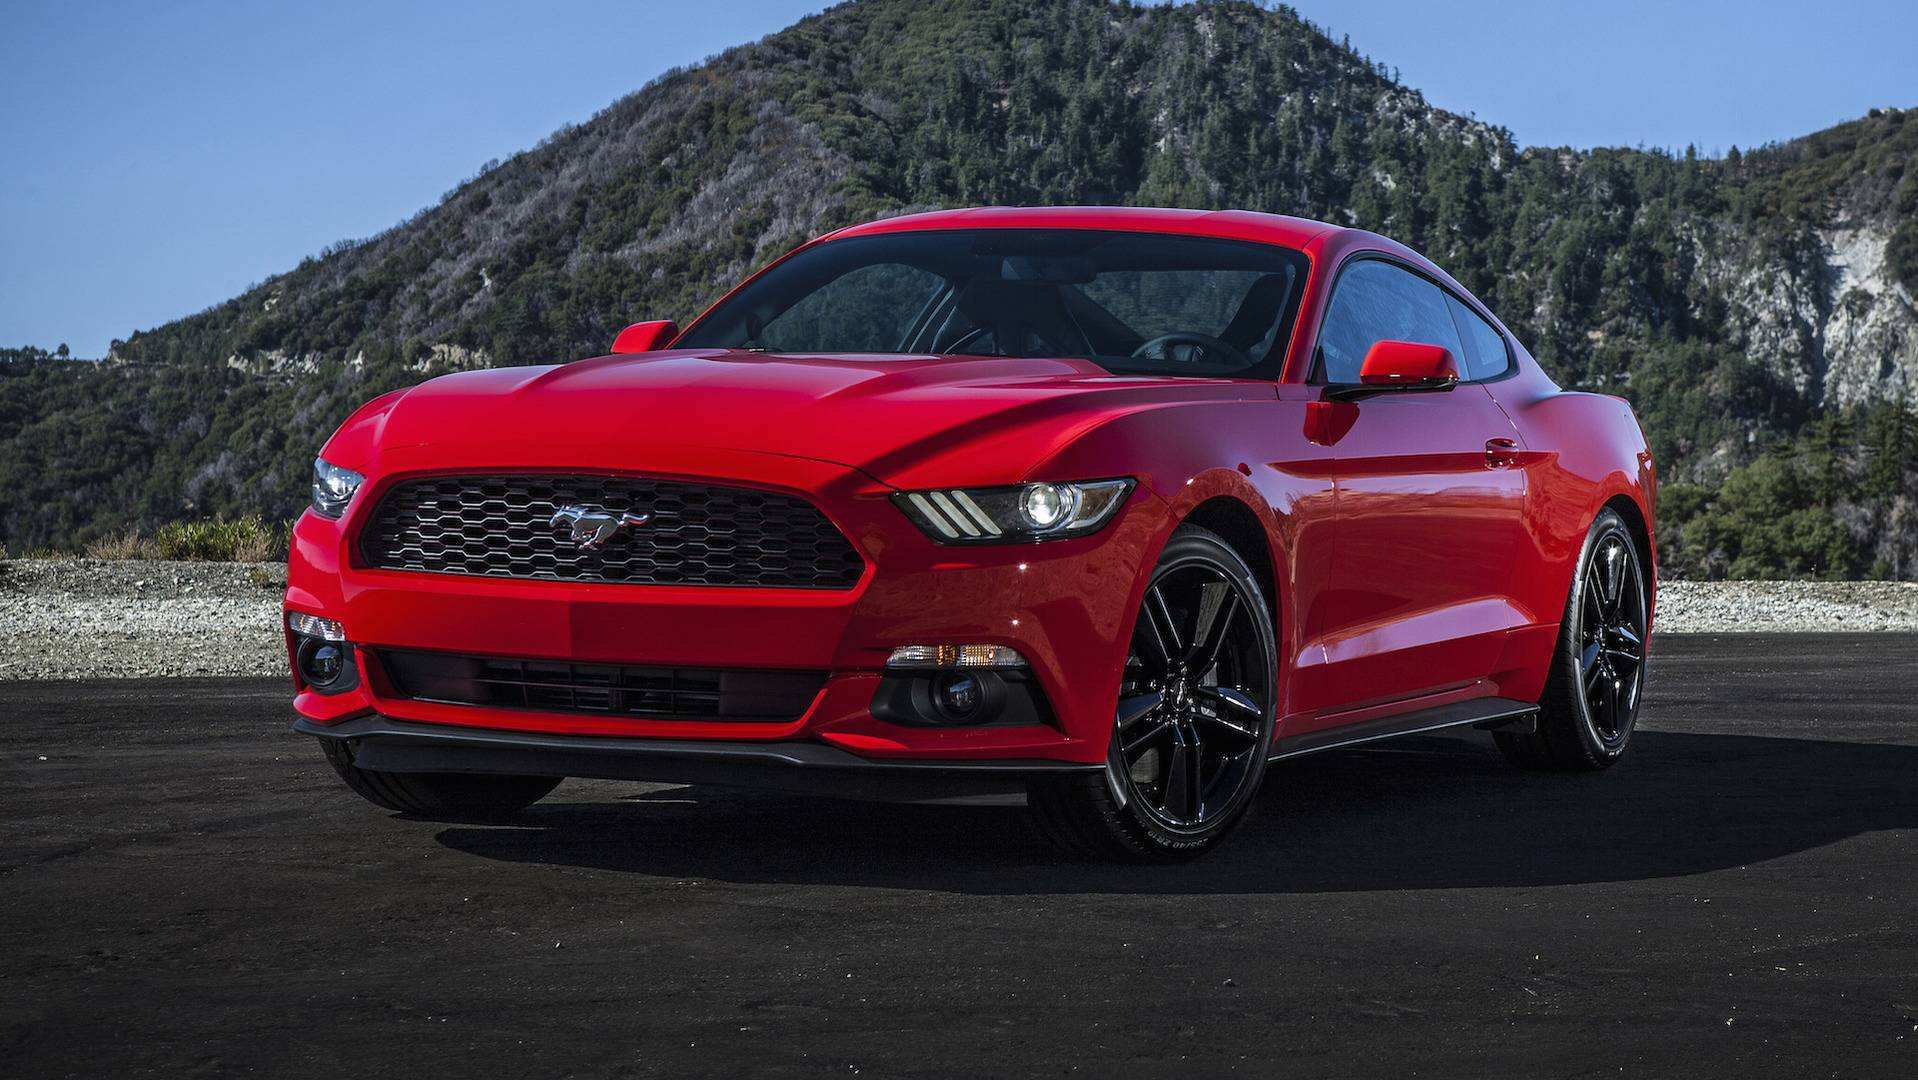 61 A 2020 Mustang Mach Price And Release Date